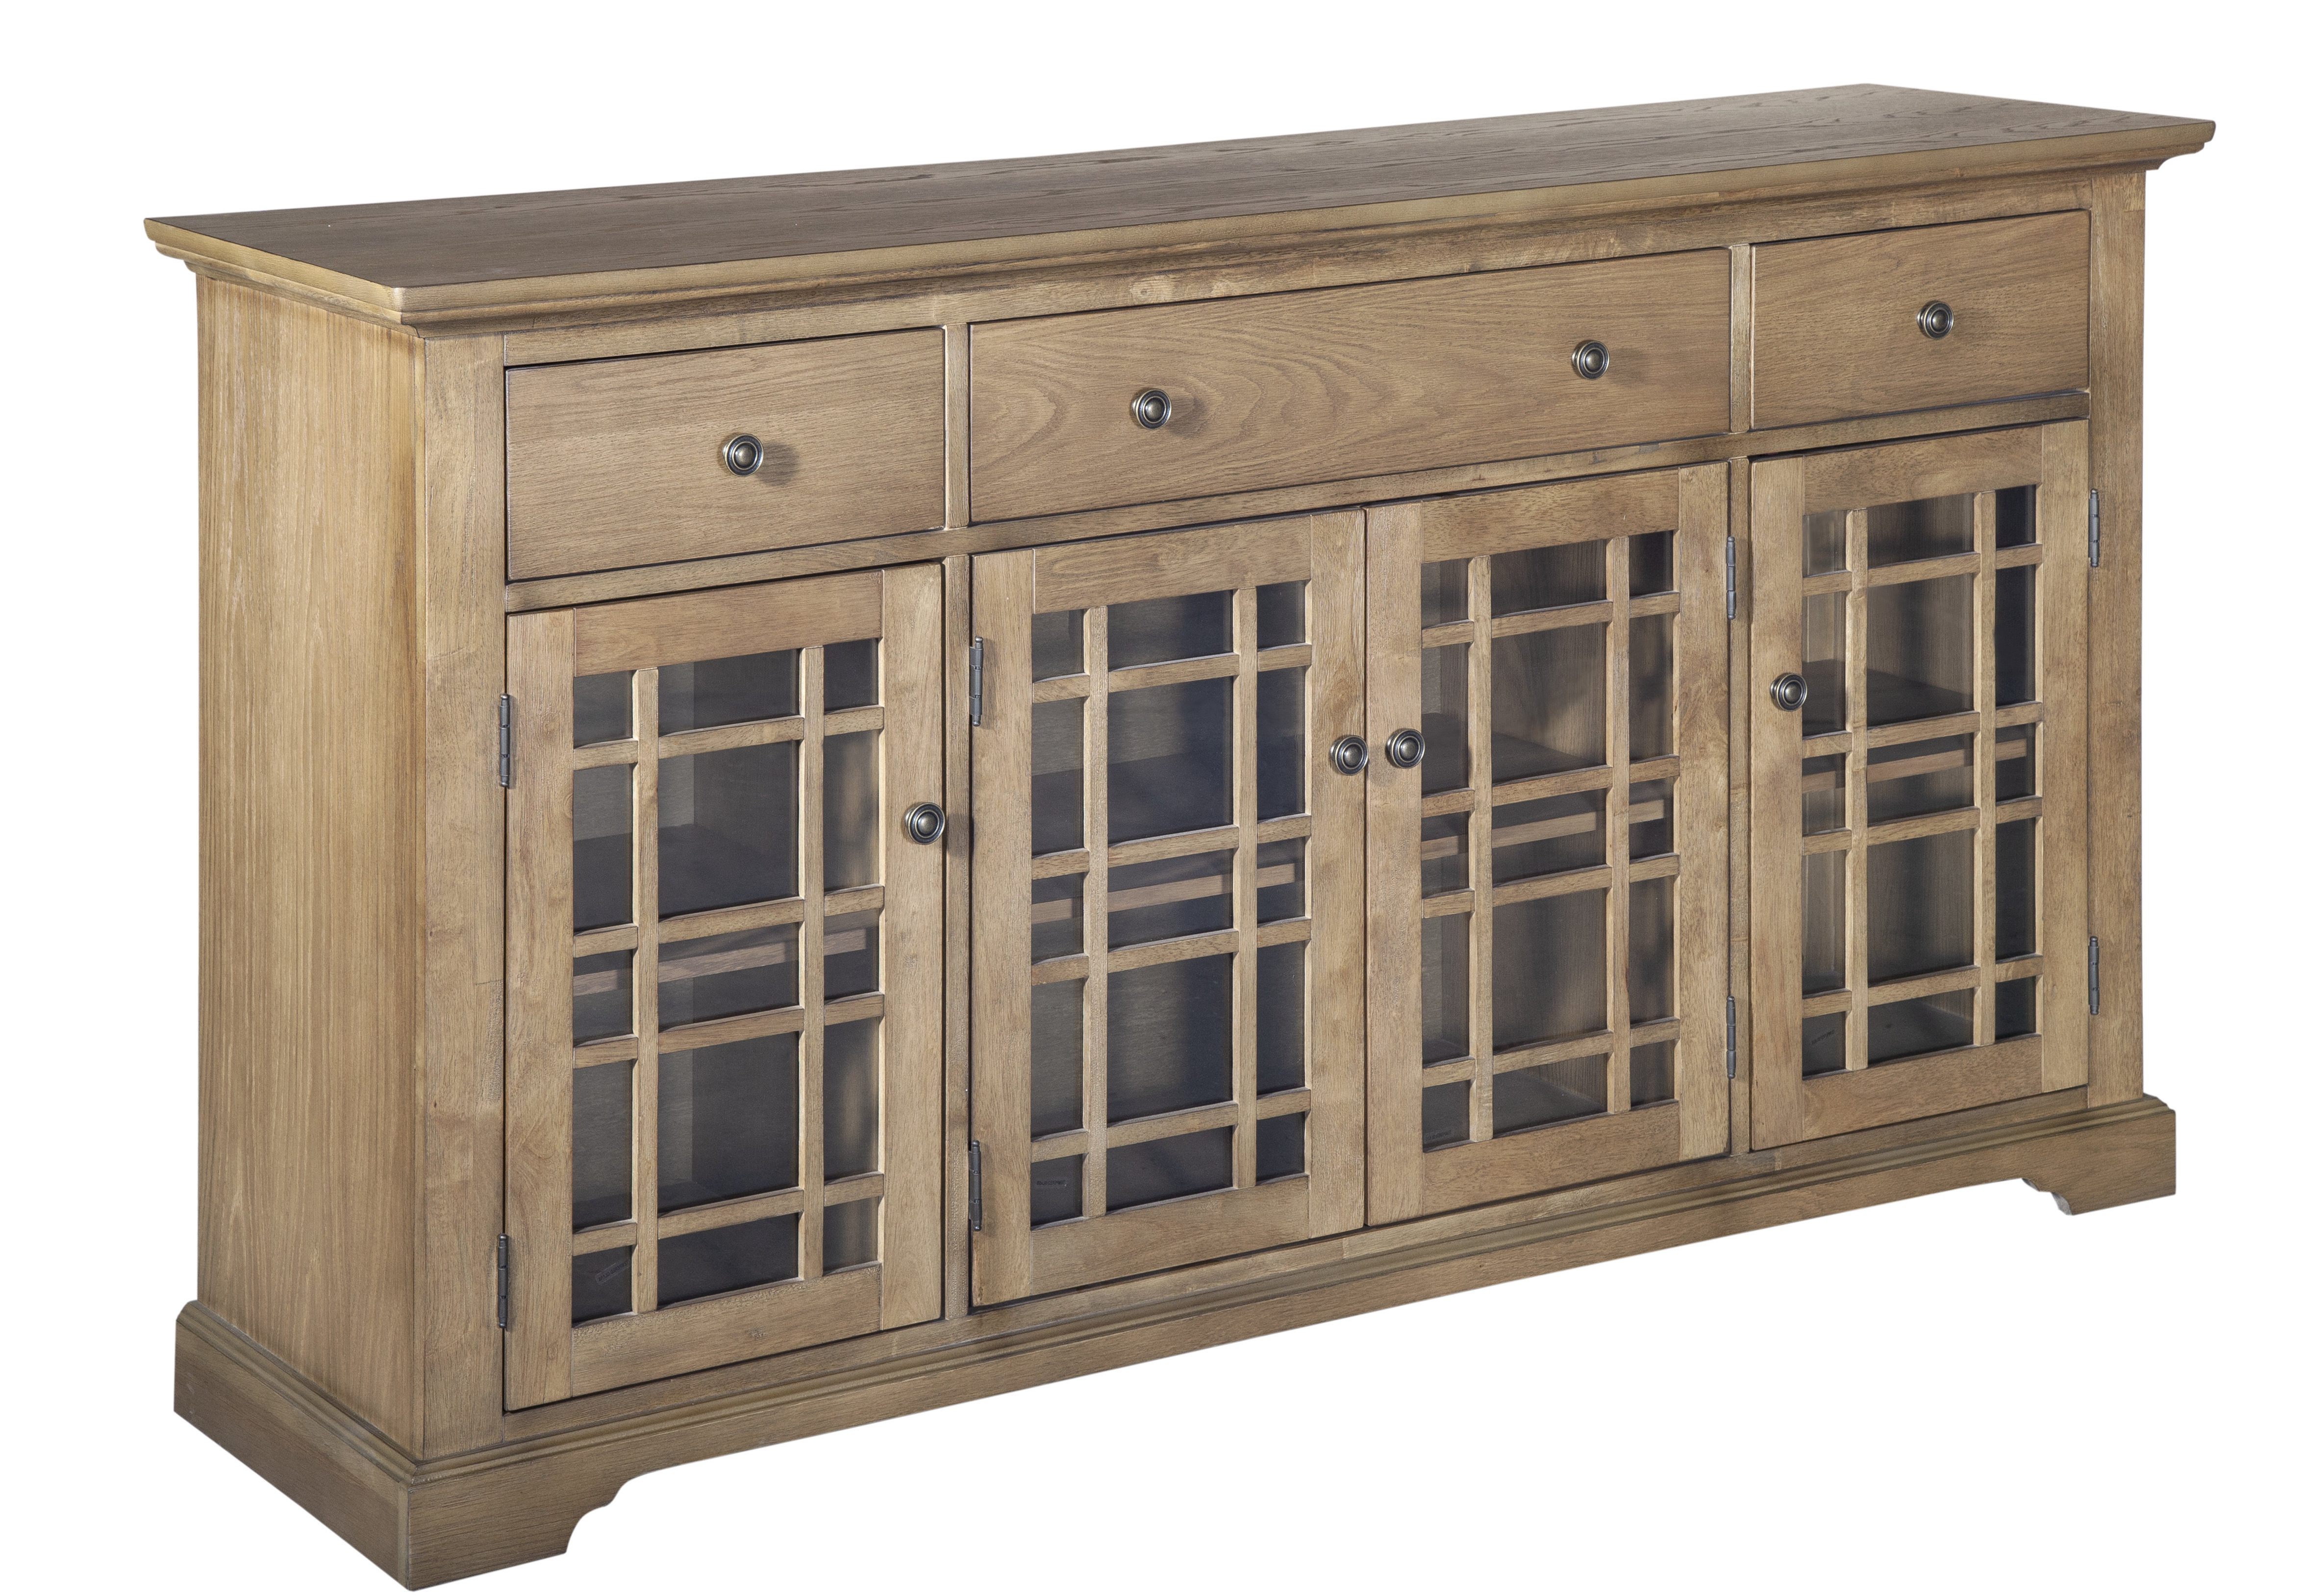 Opheim 4 Doors Accent Cabinet intended for Eau Claire 6 Door Accent Cabinets (Image 23 of 30)